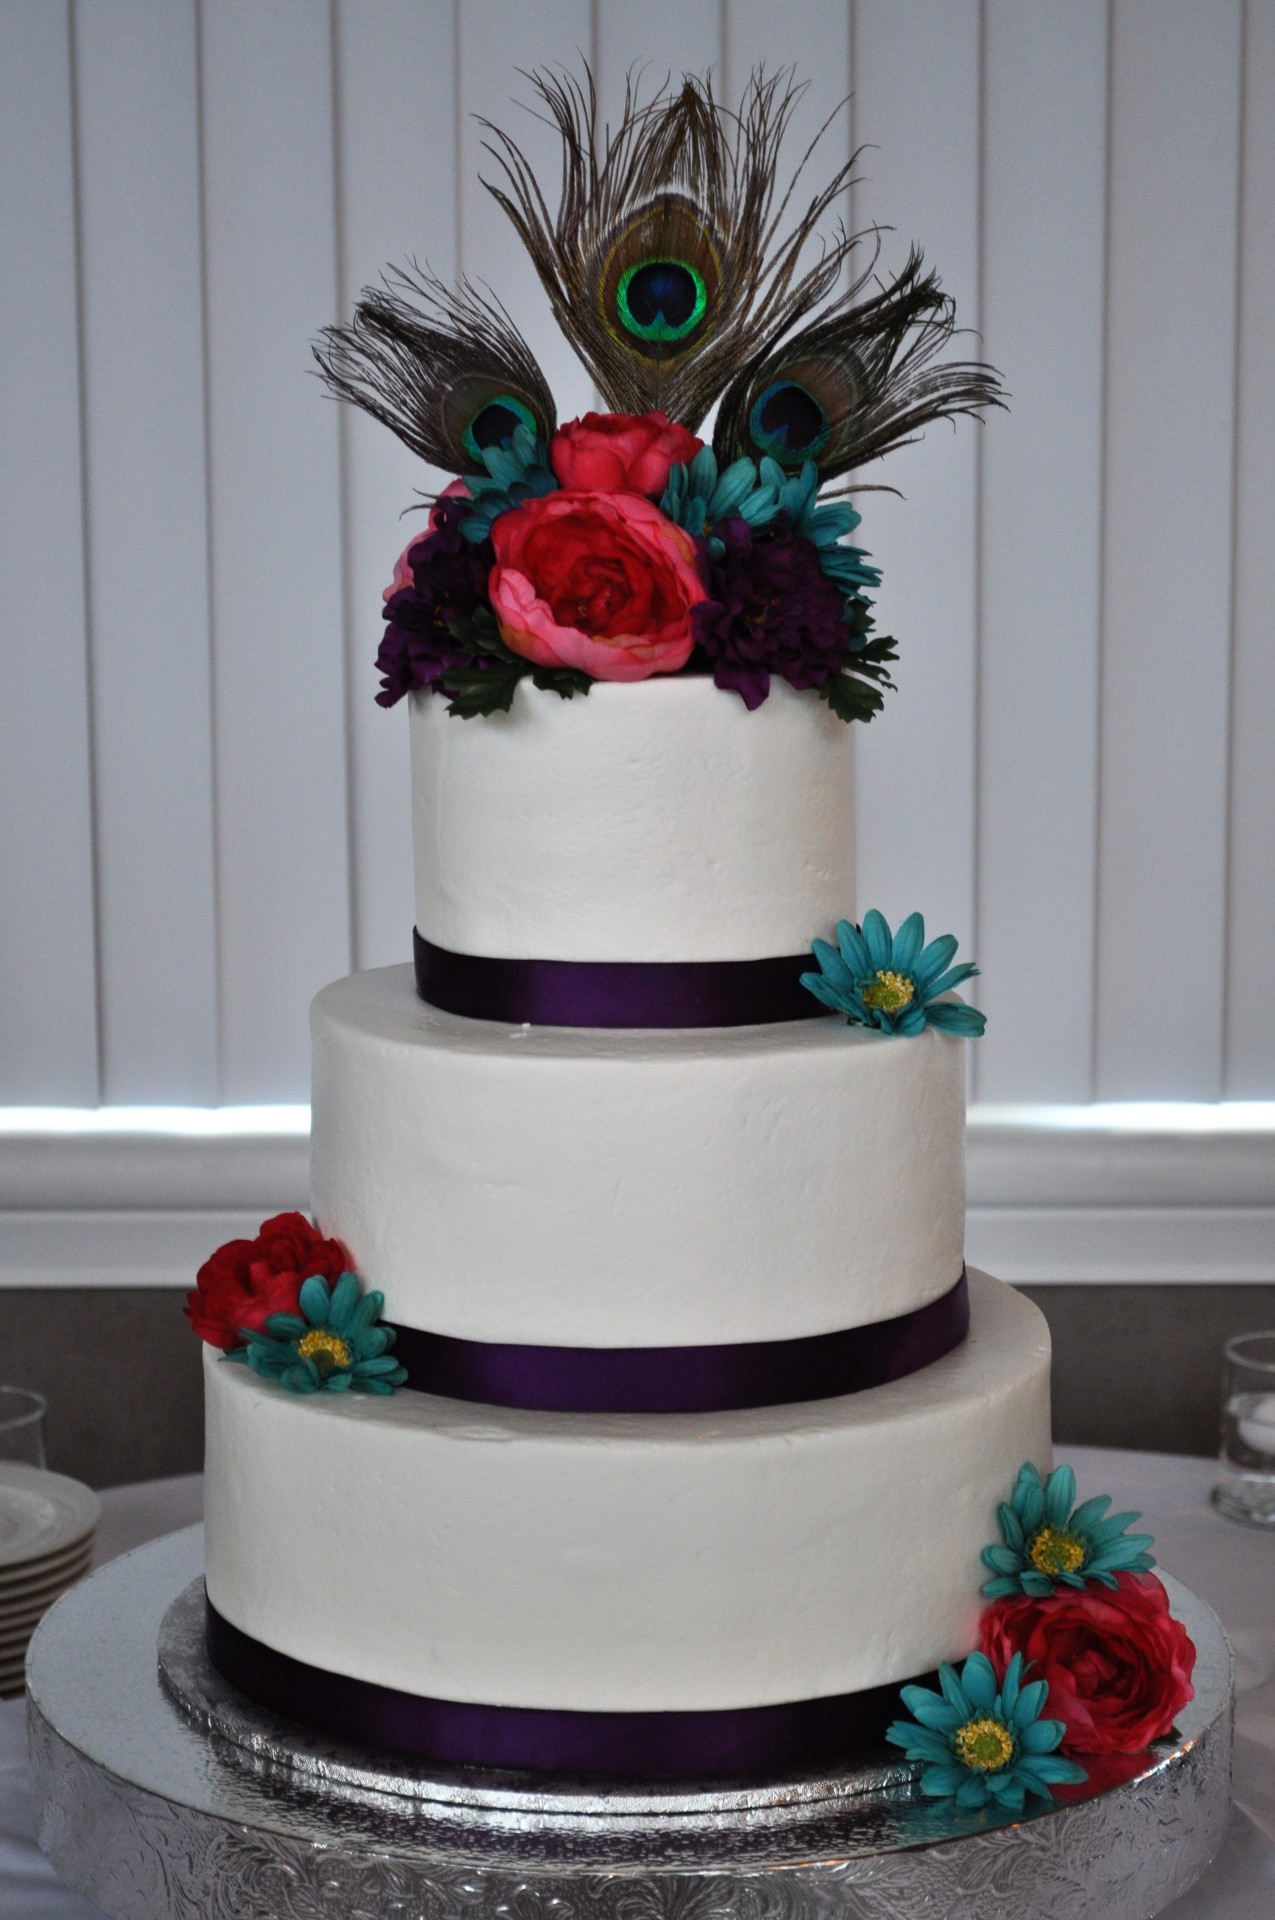 Peacock feathers and flower topper